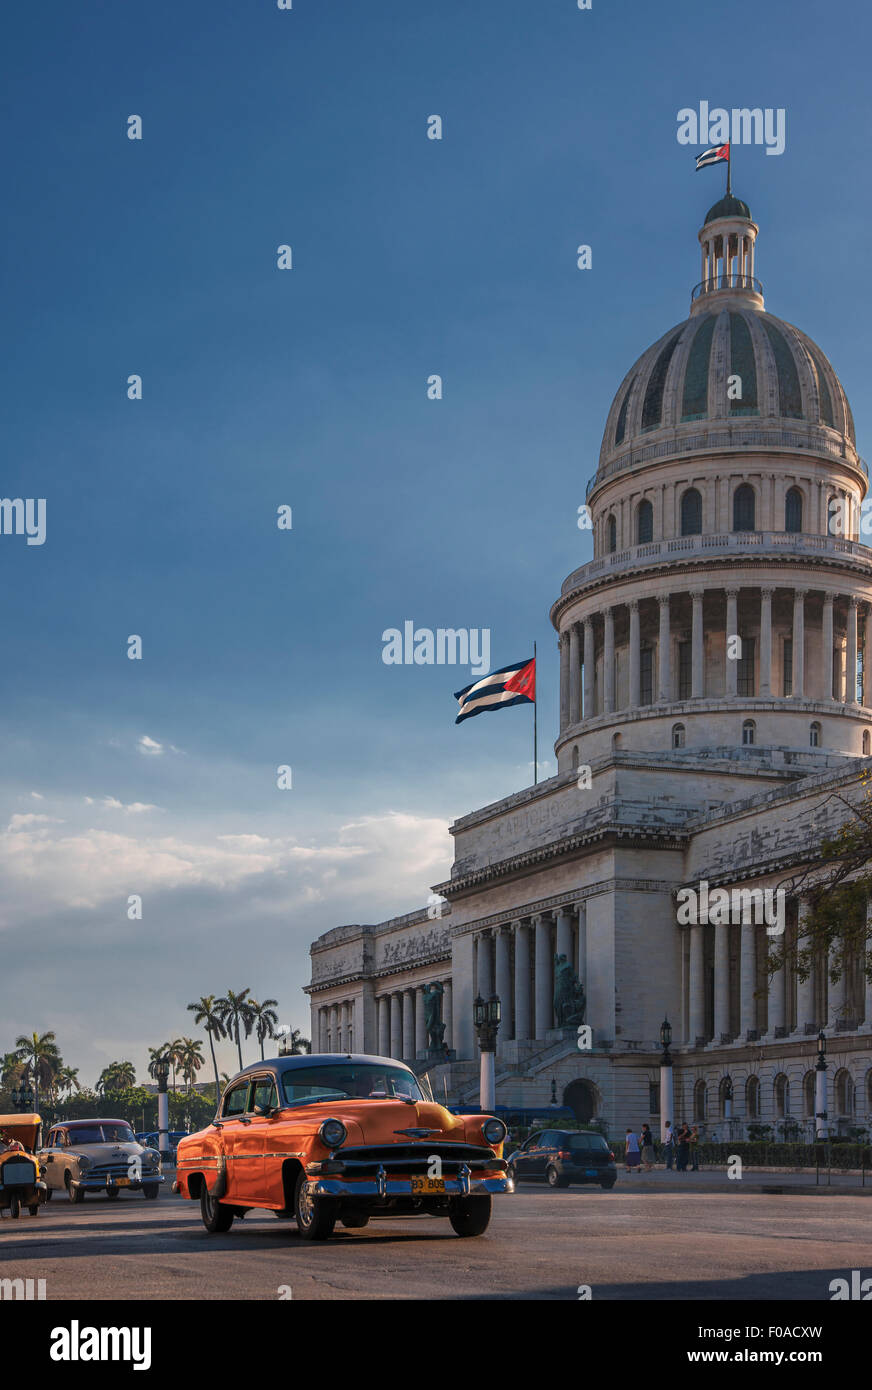 Vintage car driving in front of Capitol Building, Havana, Cuba - Stock Image